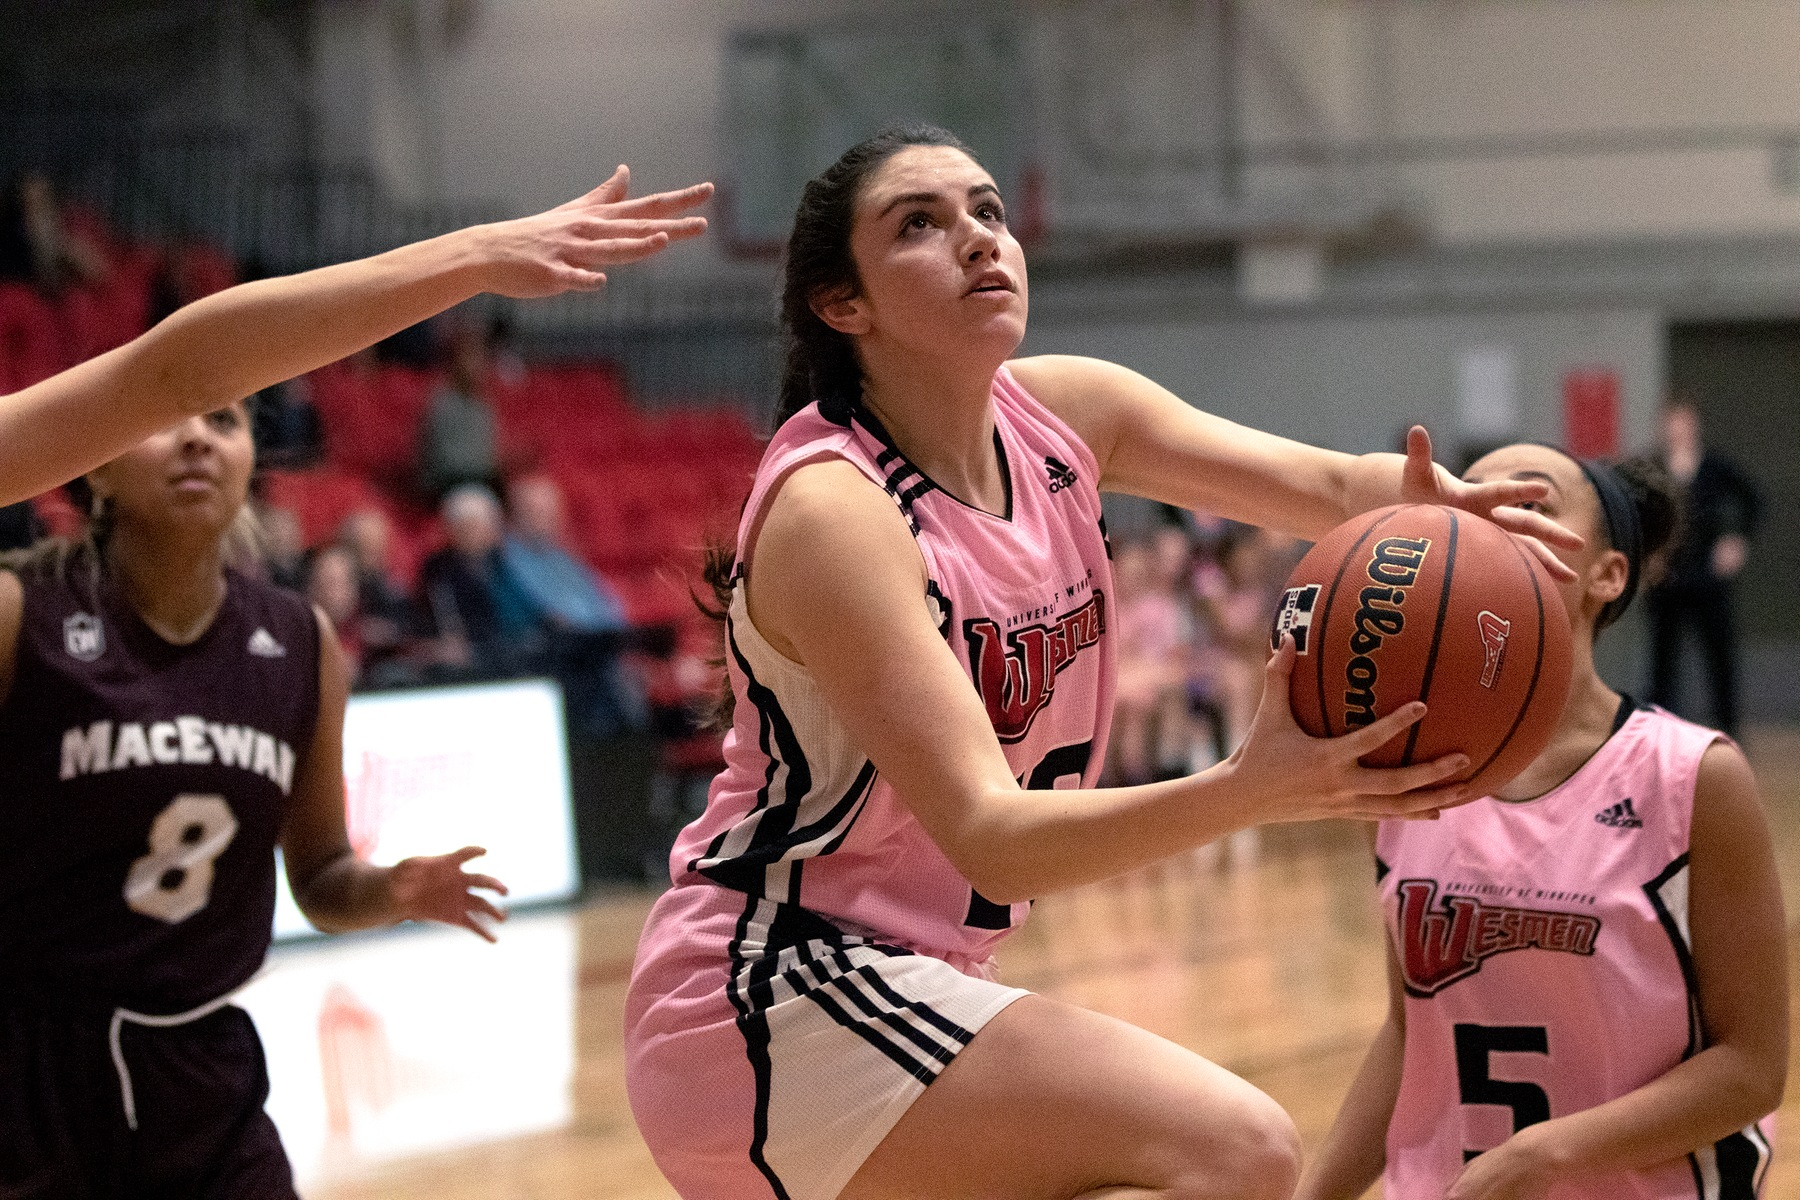 Jessica Dyck drives for a reverse lay-up during Wesmen women's basketball action against the MacEwan Griffins on Friday, Jan. 10, 2020. (David Larkins/Wesmen Athletics)